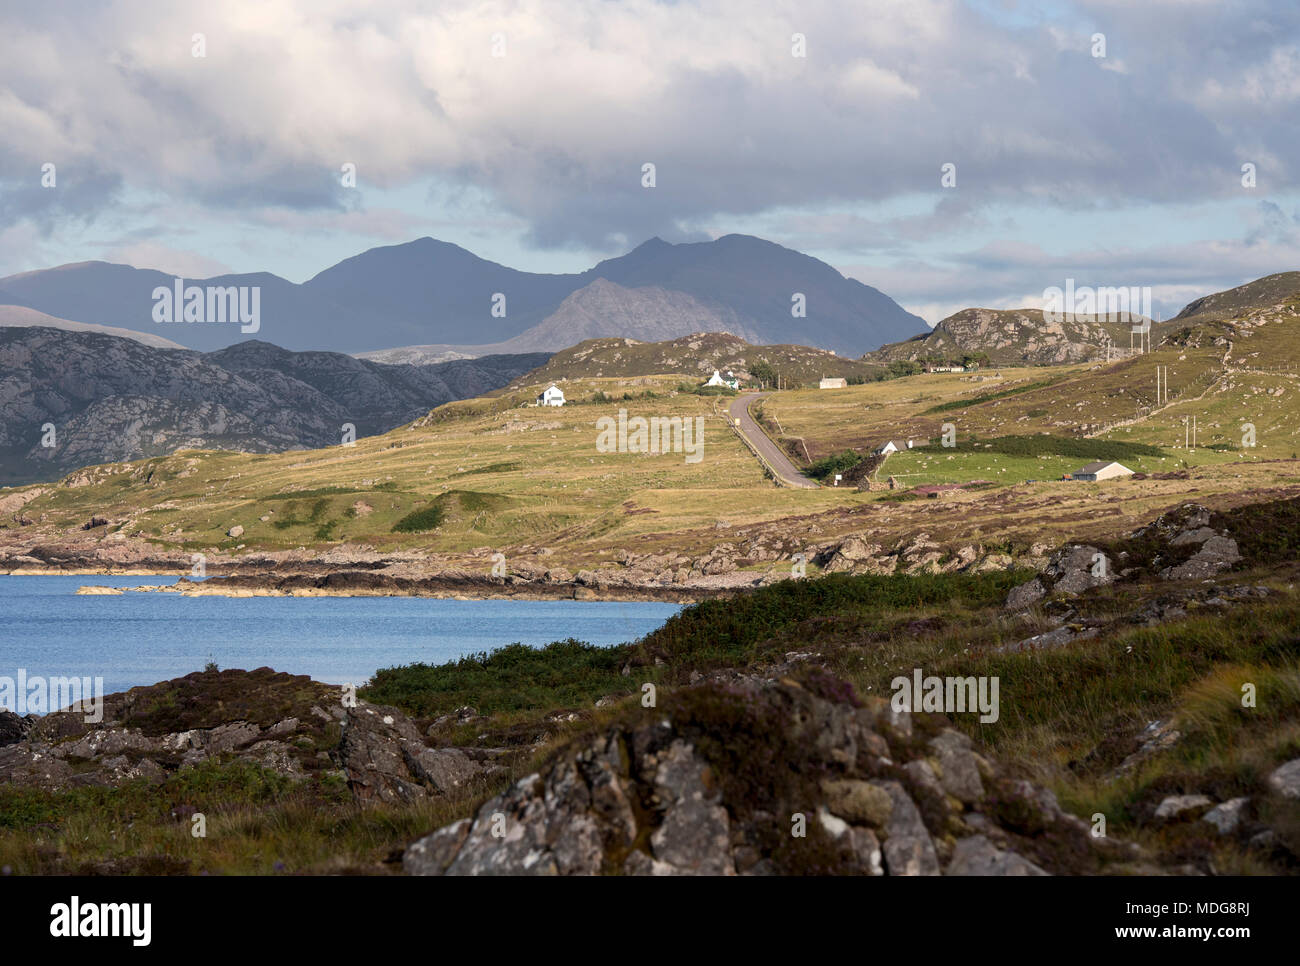 Section of the North Coast 500 scenic route near Laide in Wester Ross, Scotland, UK - Stock Image